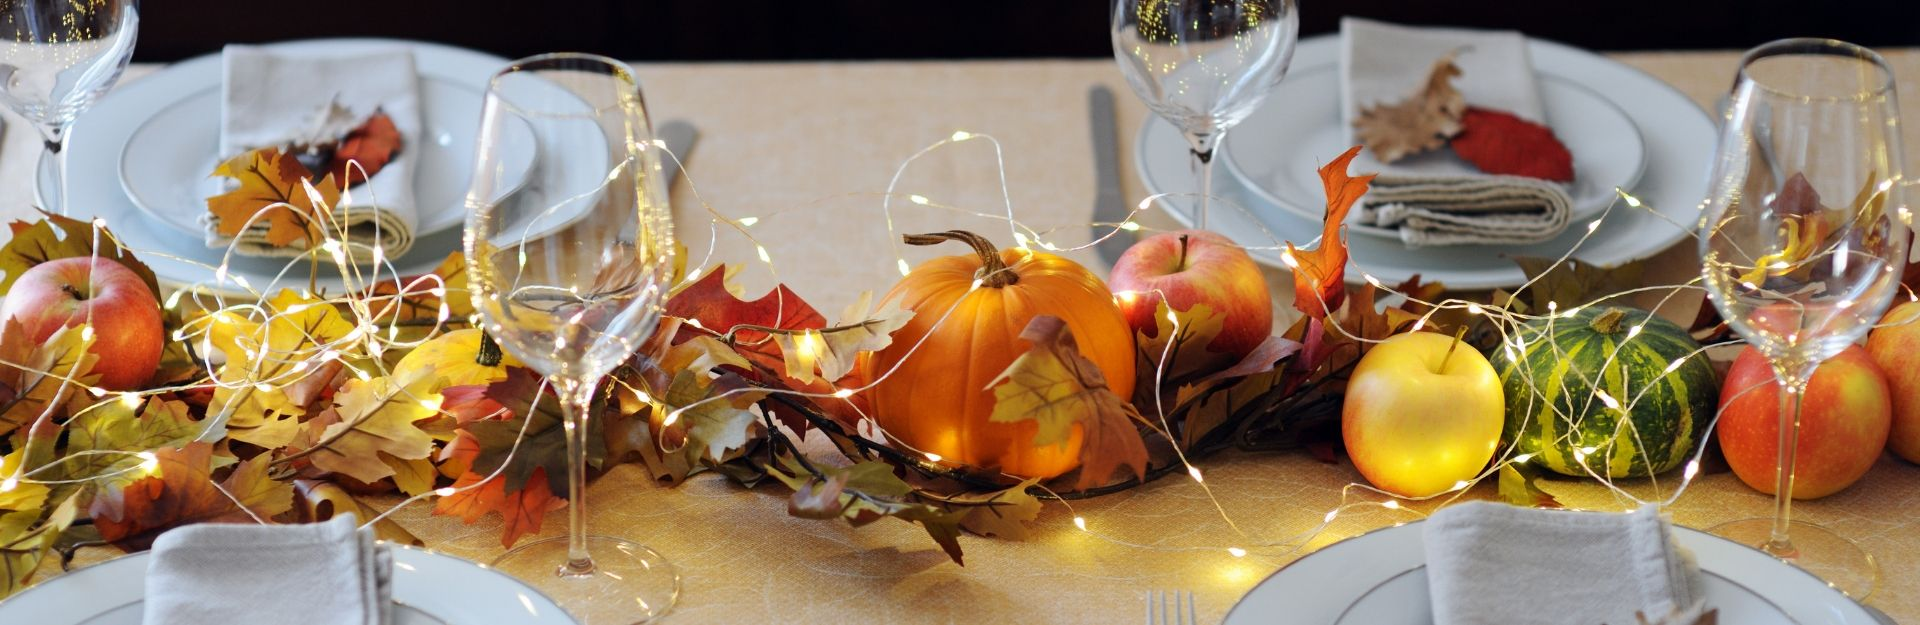 A festive table setting for a fall dinner.